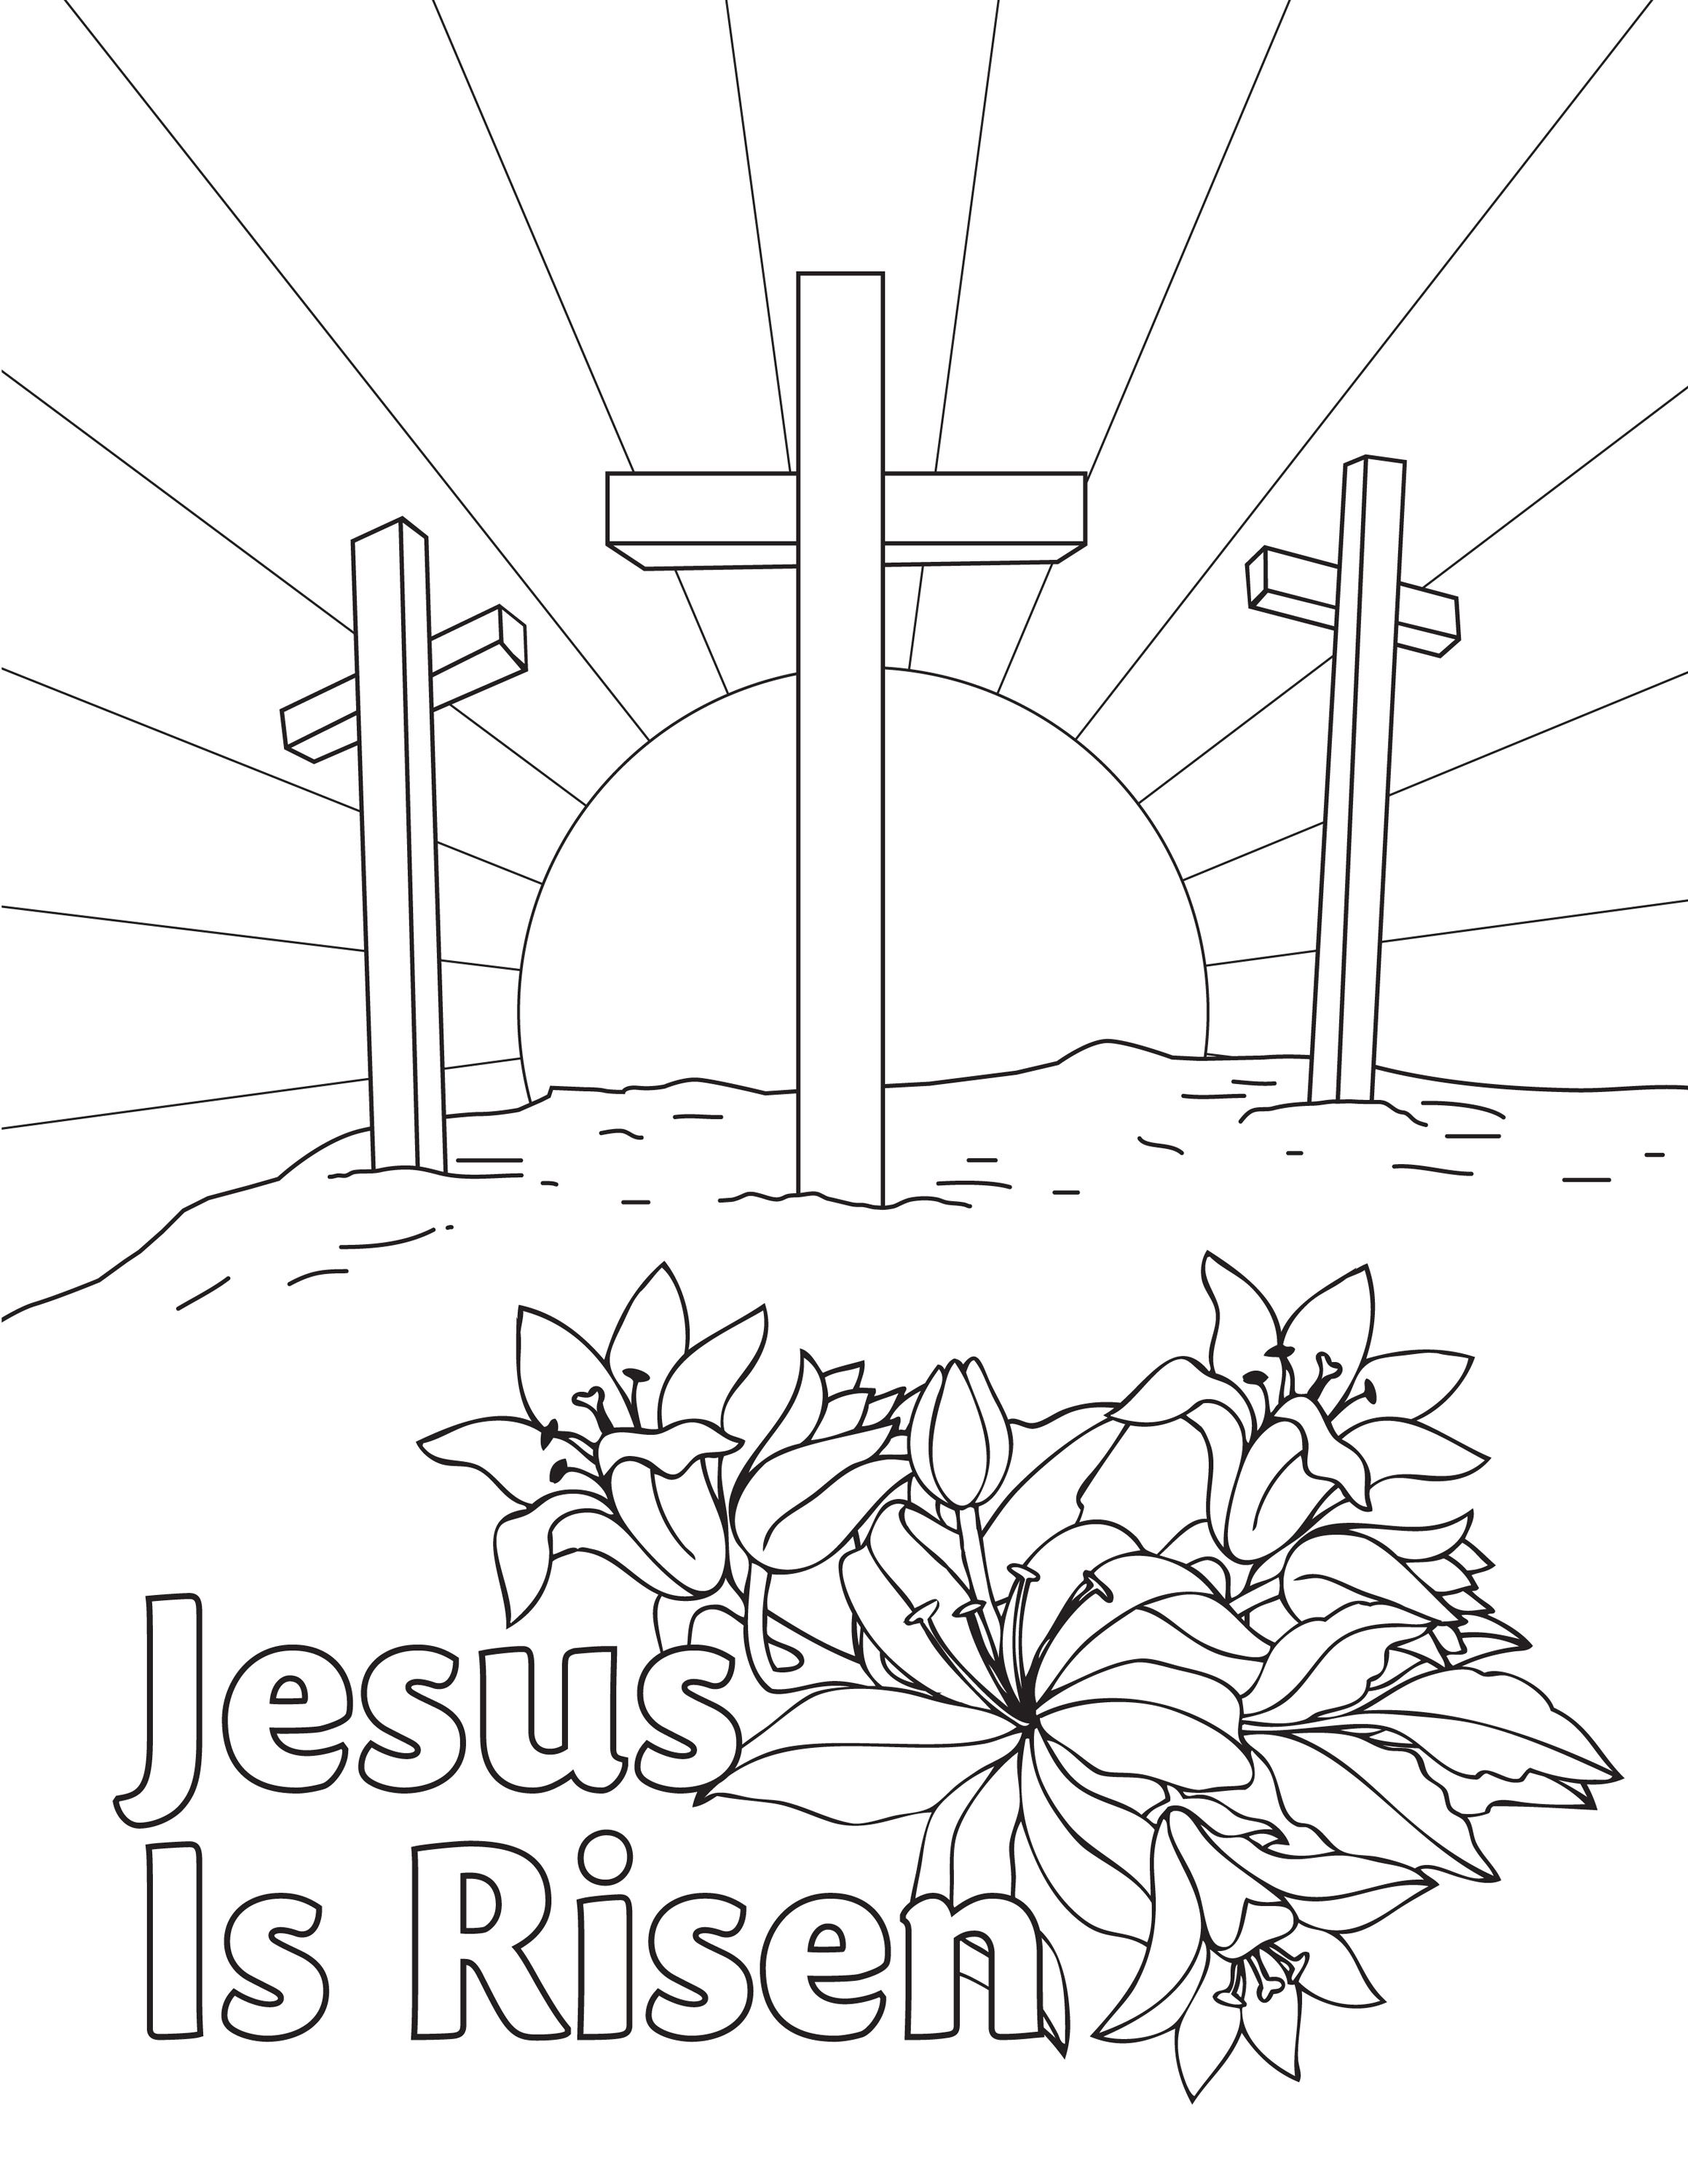 Free Easter Coloring Page Downloadable Printable From Aop Jesus Is Risen Homeschooling Jesus Coloring Pages Free Easter Coloring Pages Easter Coloring Sheets